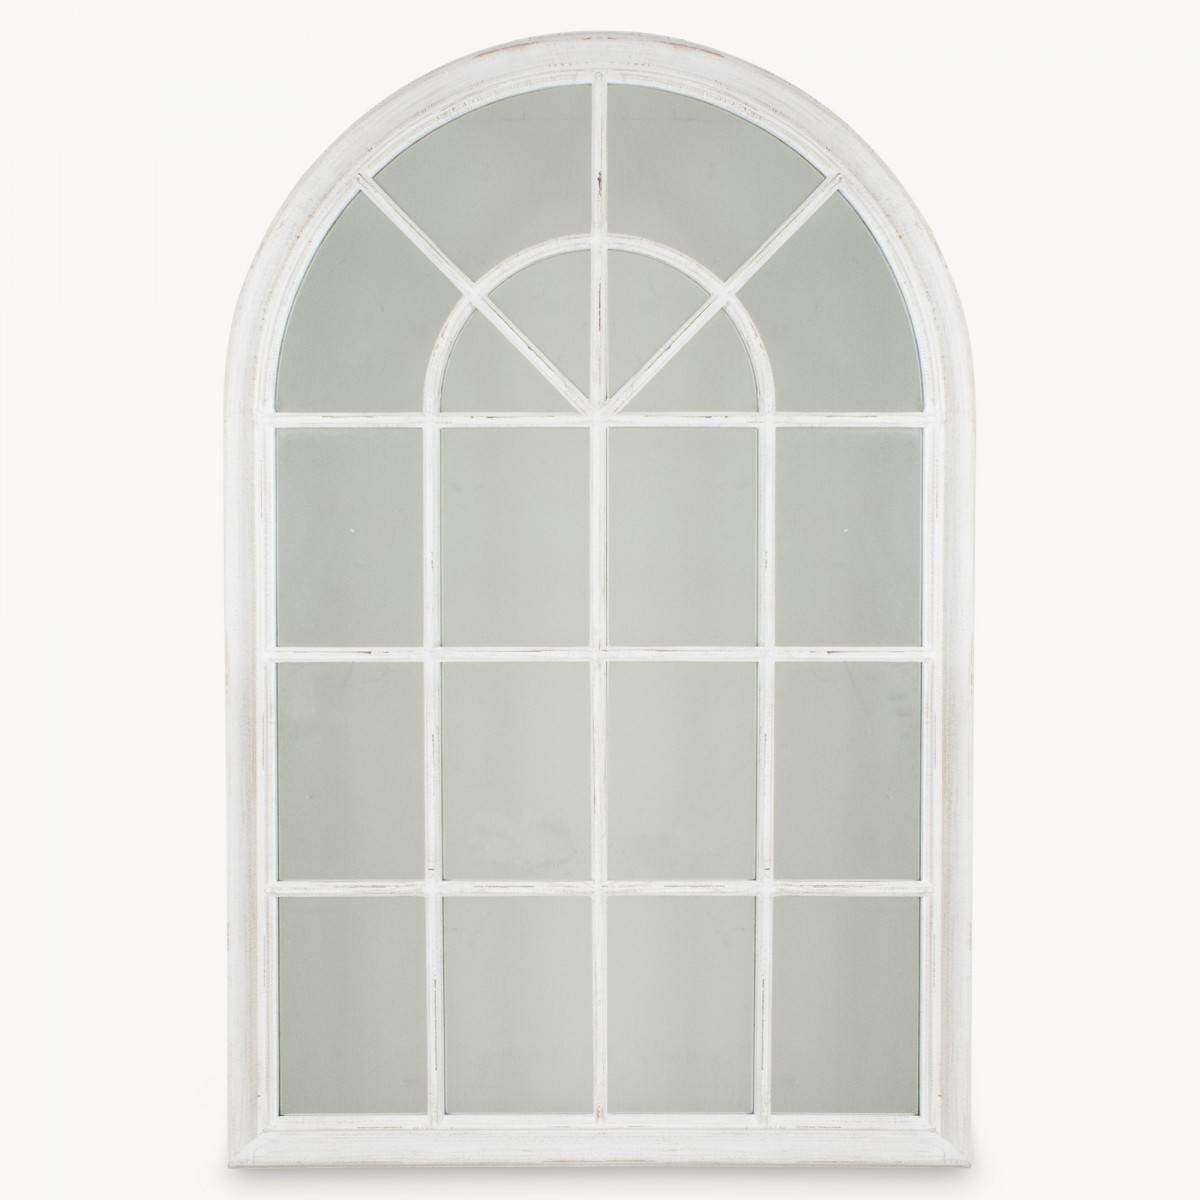 Gallery of Arched Window Mirrors (View 20 of 25 Photos)